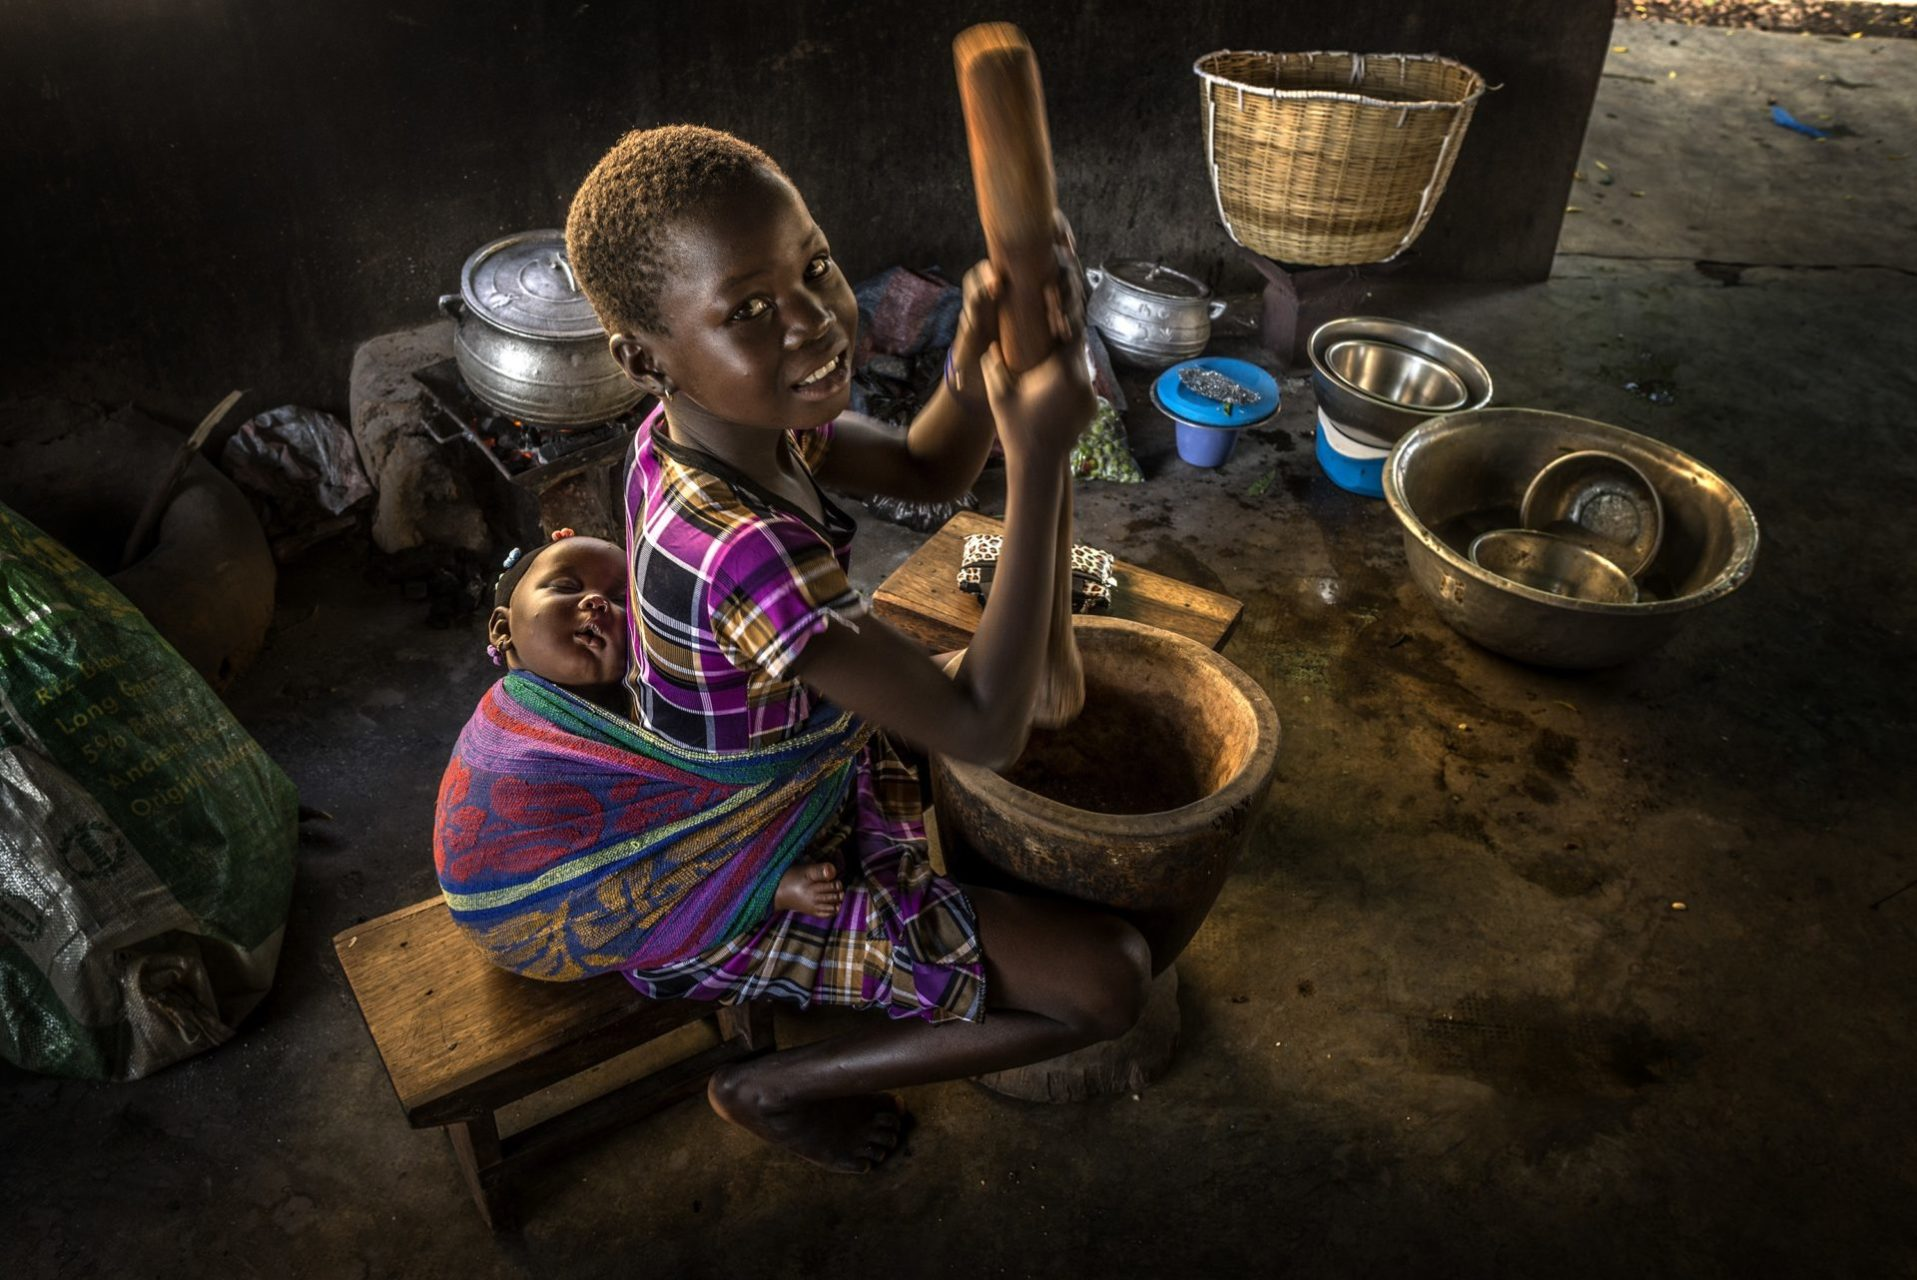 A young smiling west african girl, with a baby strapped to her back, prepares a meal in a large bowl with a wooden masher.